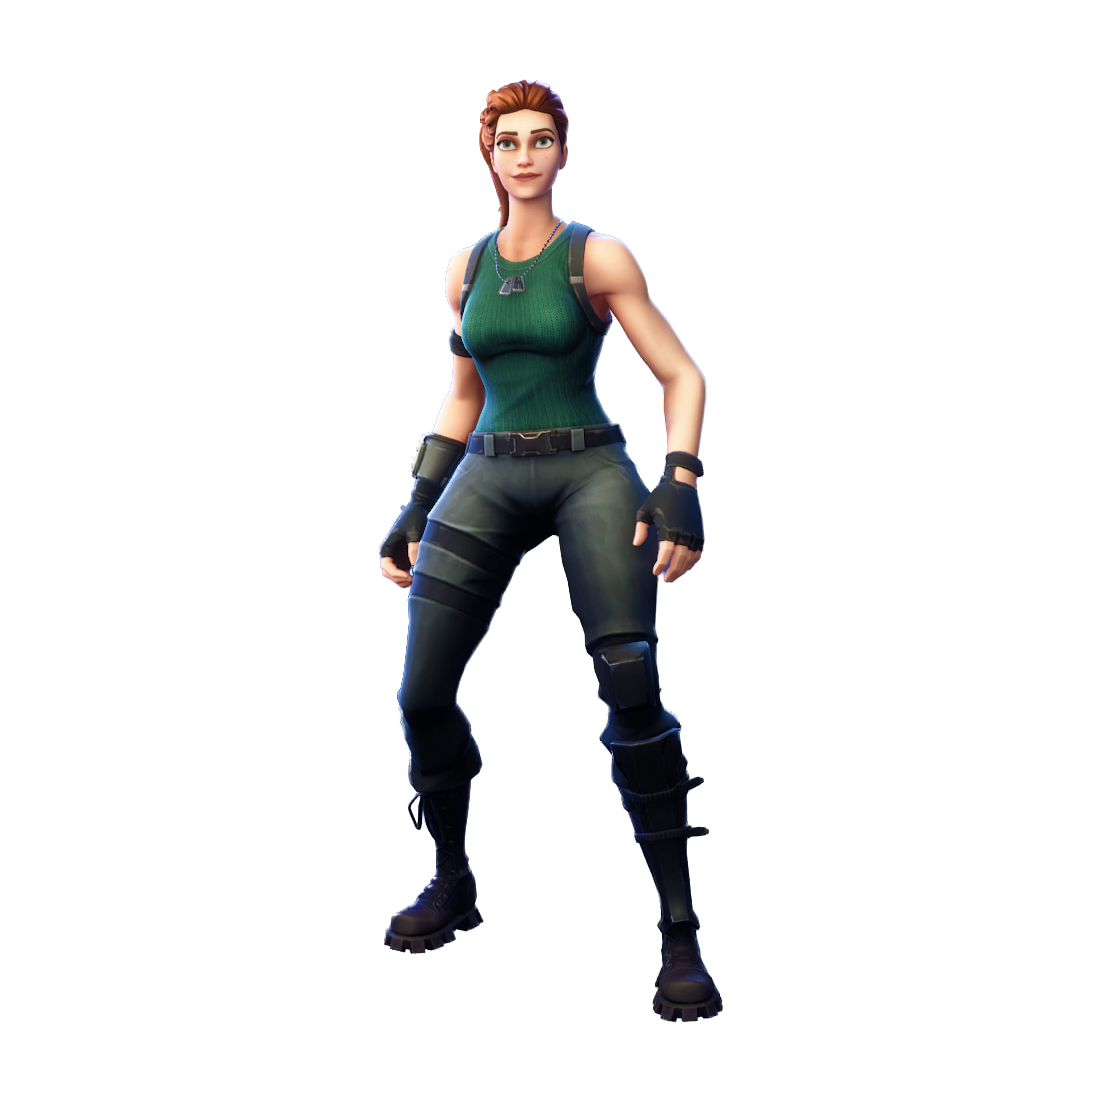 Fortnite Pathfinder PNG Image.